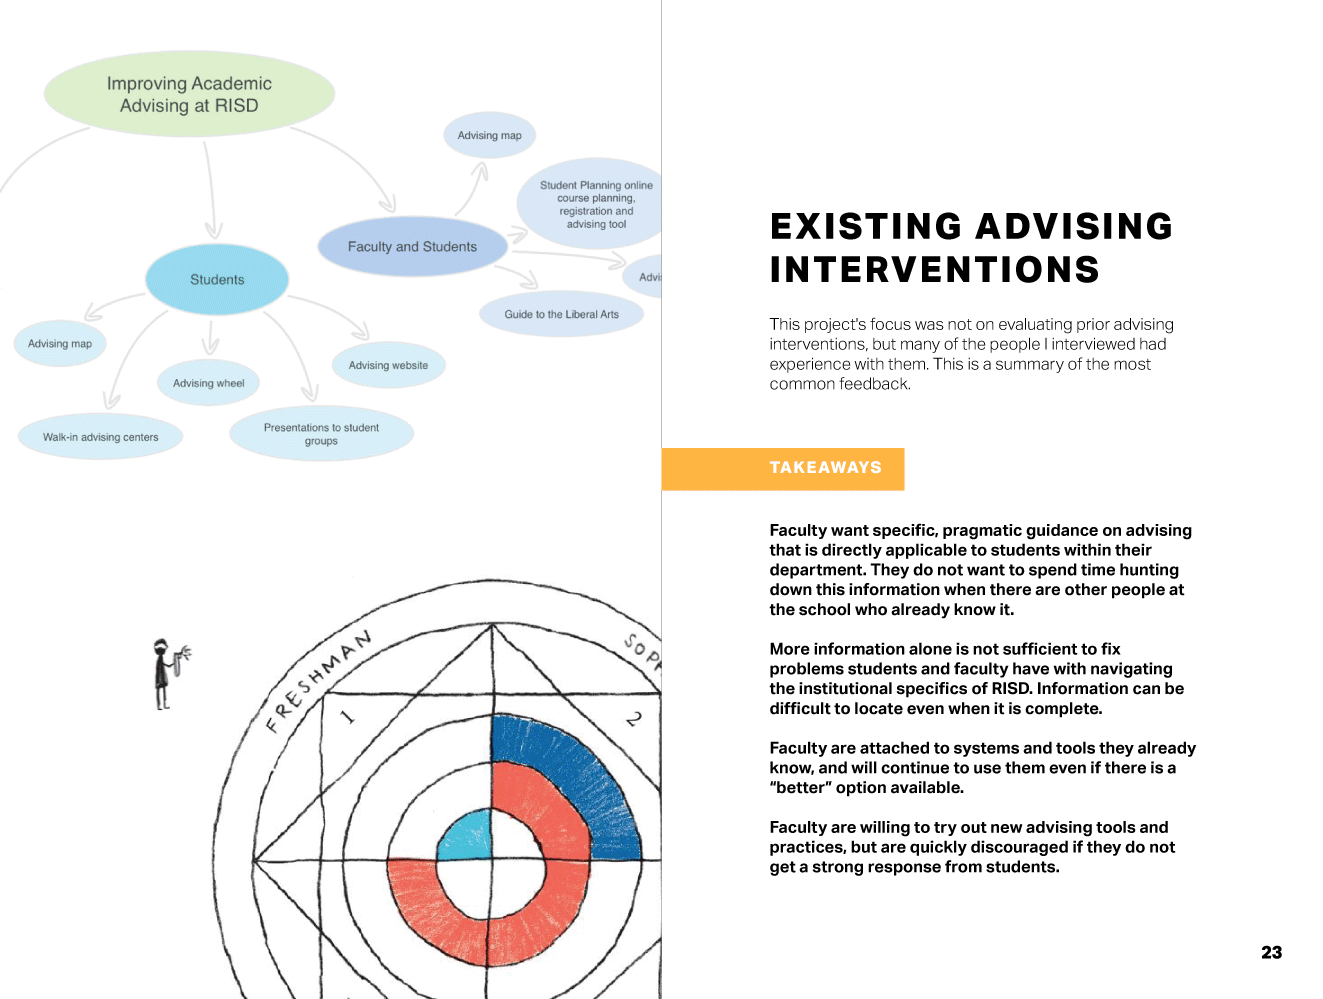 Advising-at-RISD_spread14_R